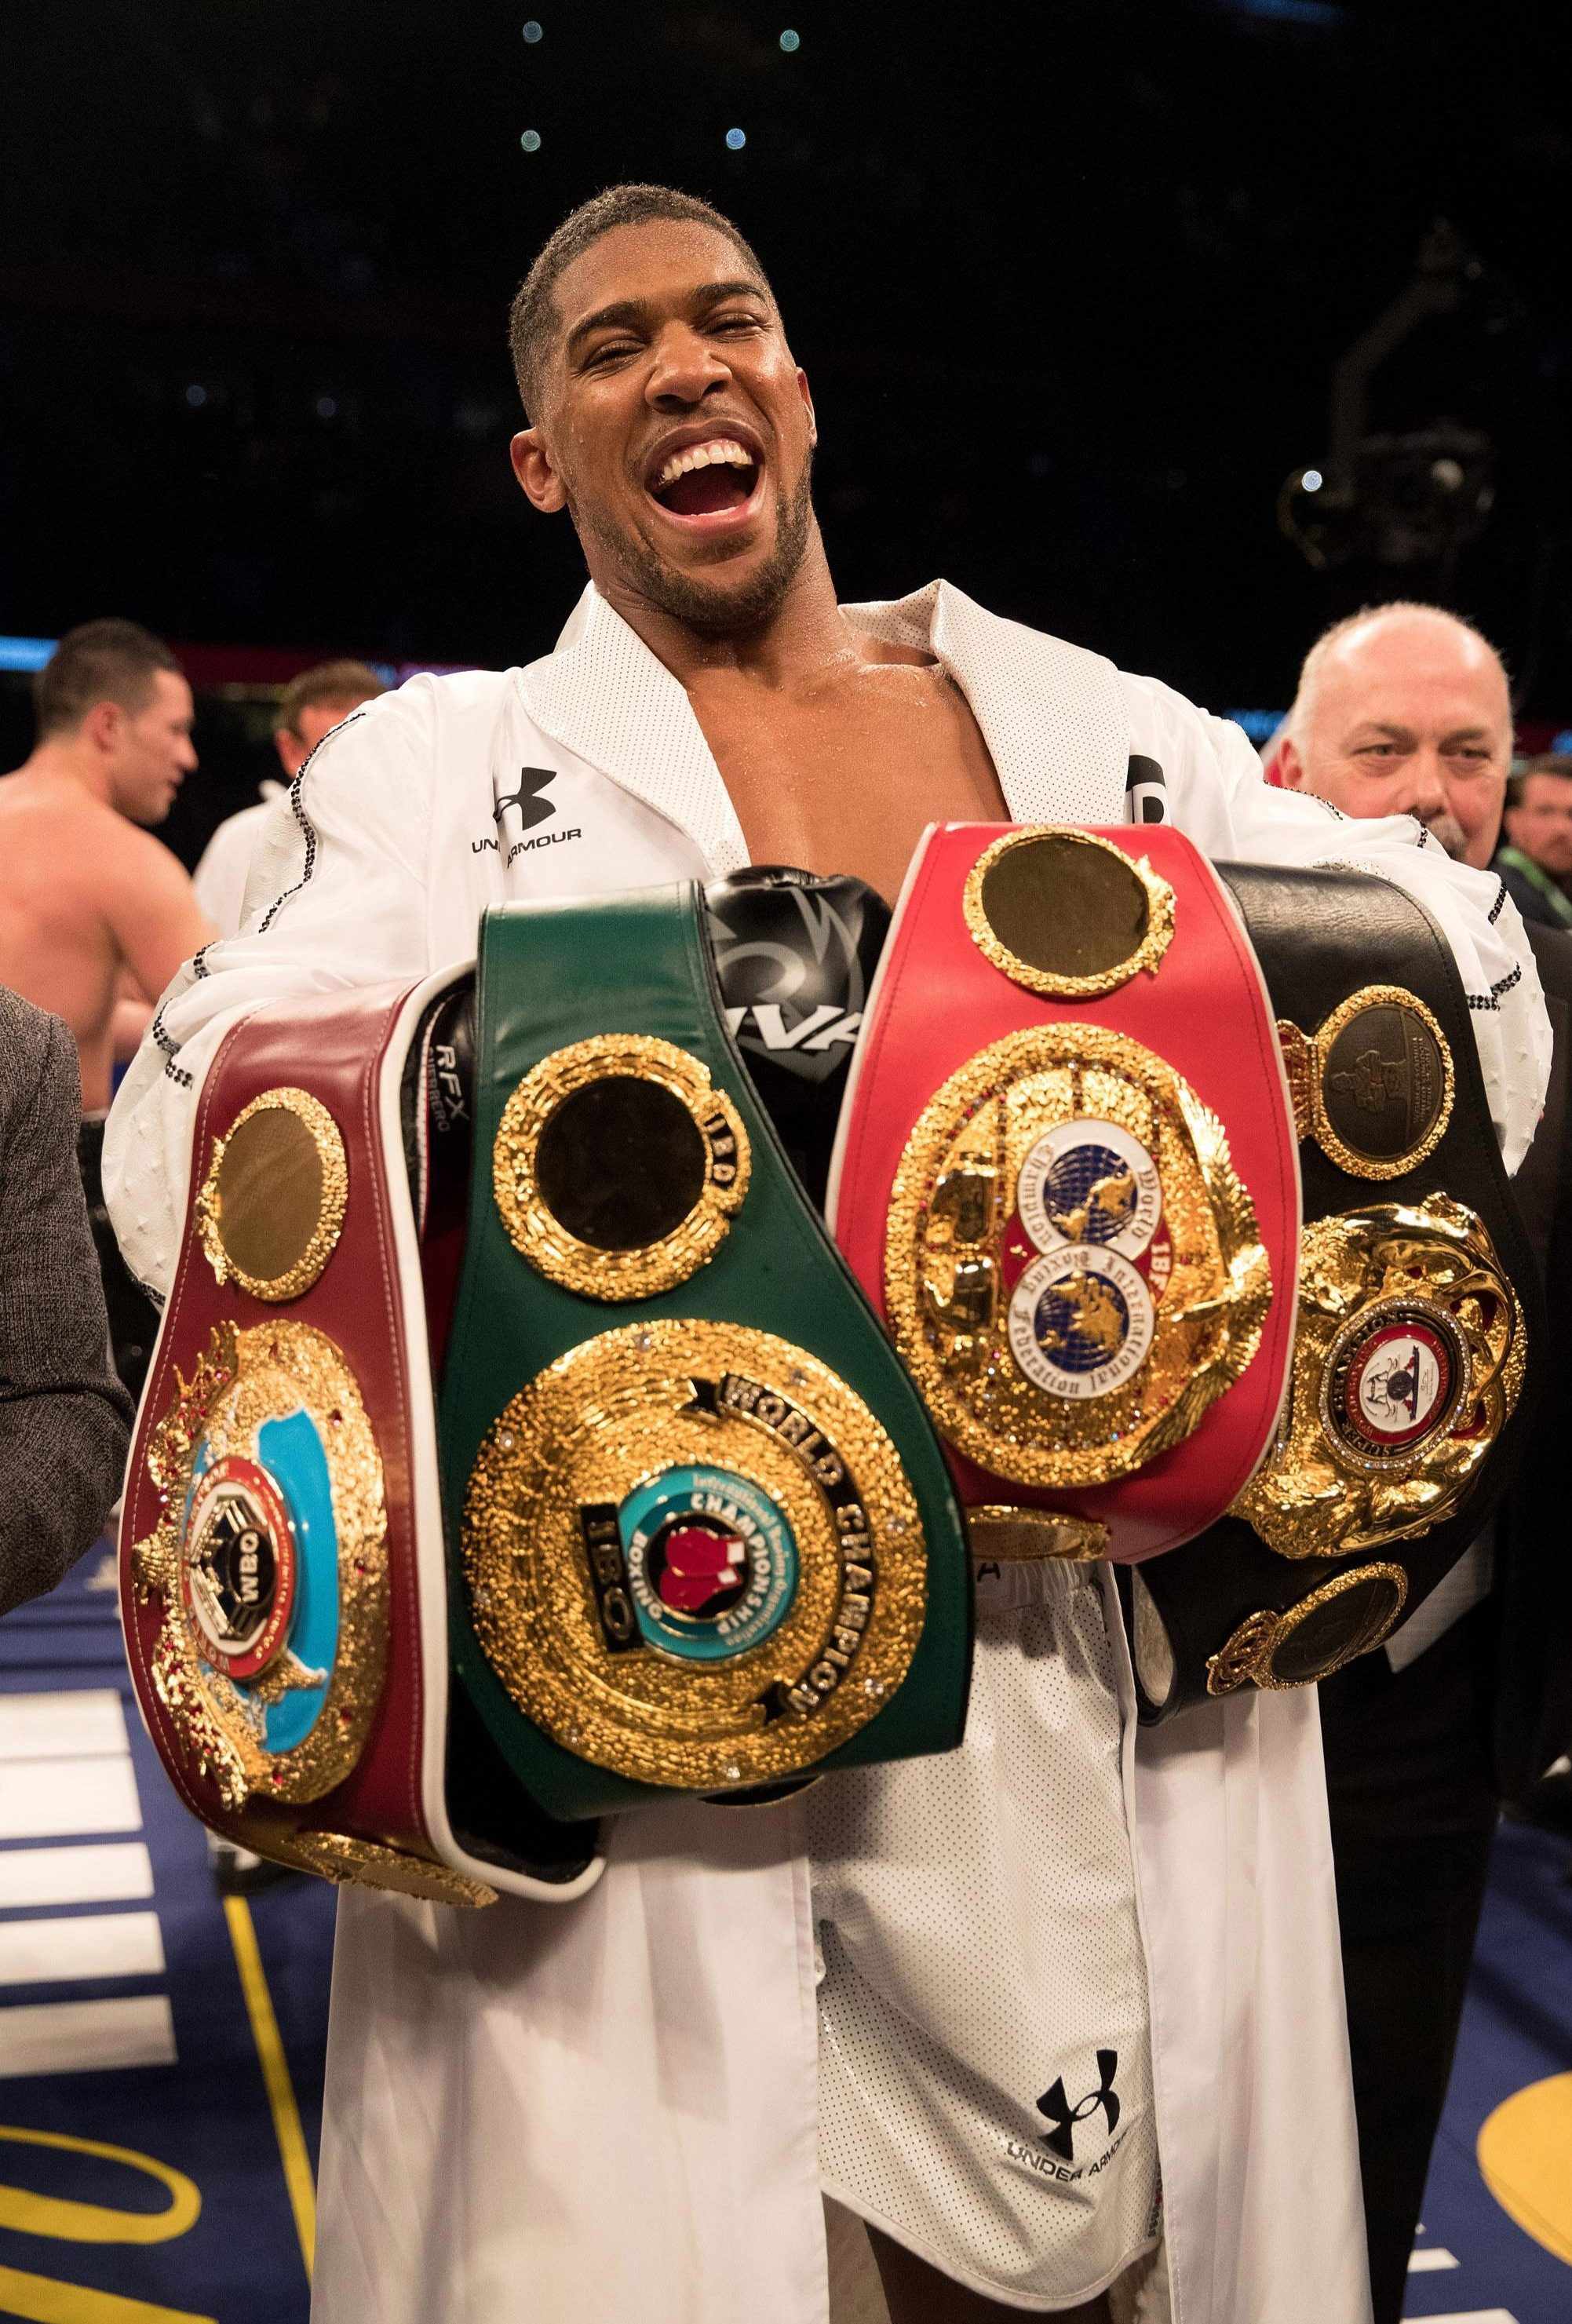 Anthony Joshua is one belt away from unifying the heavyweight division, needing to beat Deontay Wilder in April to achieve the feat